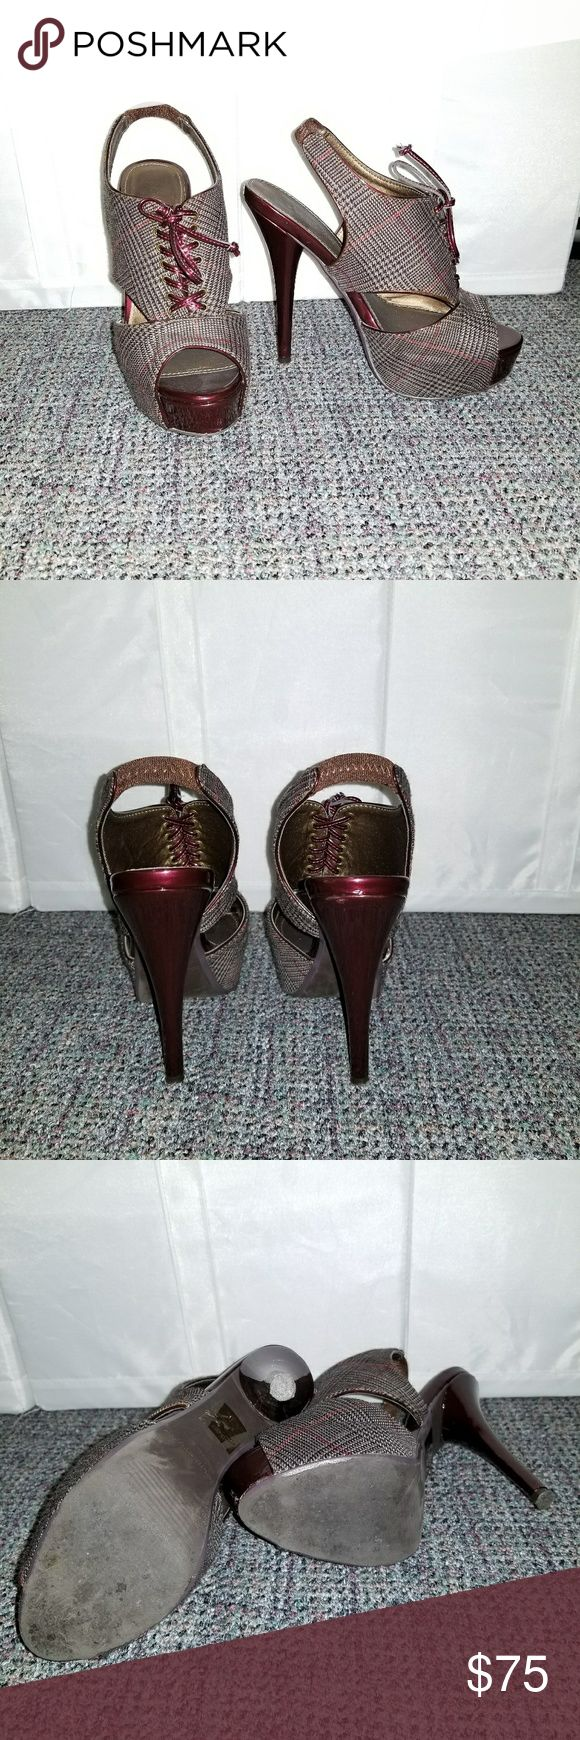 SHORT SALE!!! Plaid Heels Original Colin Stuarts Burgundy and Gray Plaid Slingback Heels. In overall very good condition. Some minor scuffs on the heel, and front opening. Colin Stuart Shoes Heels